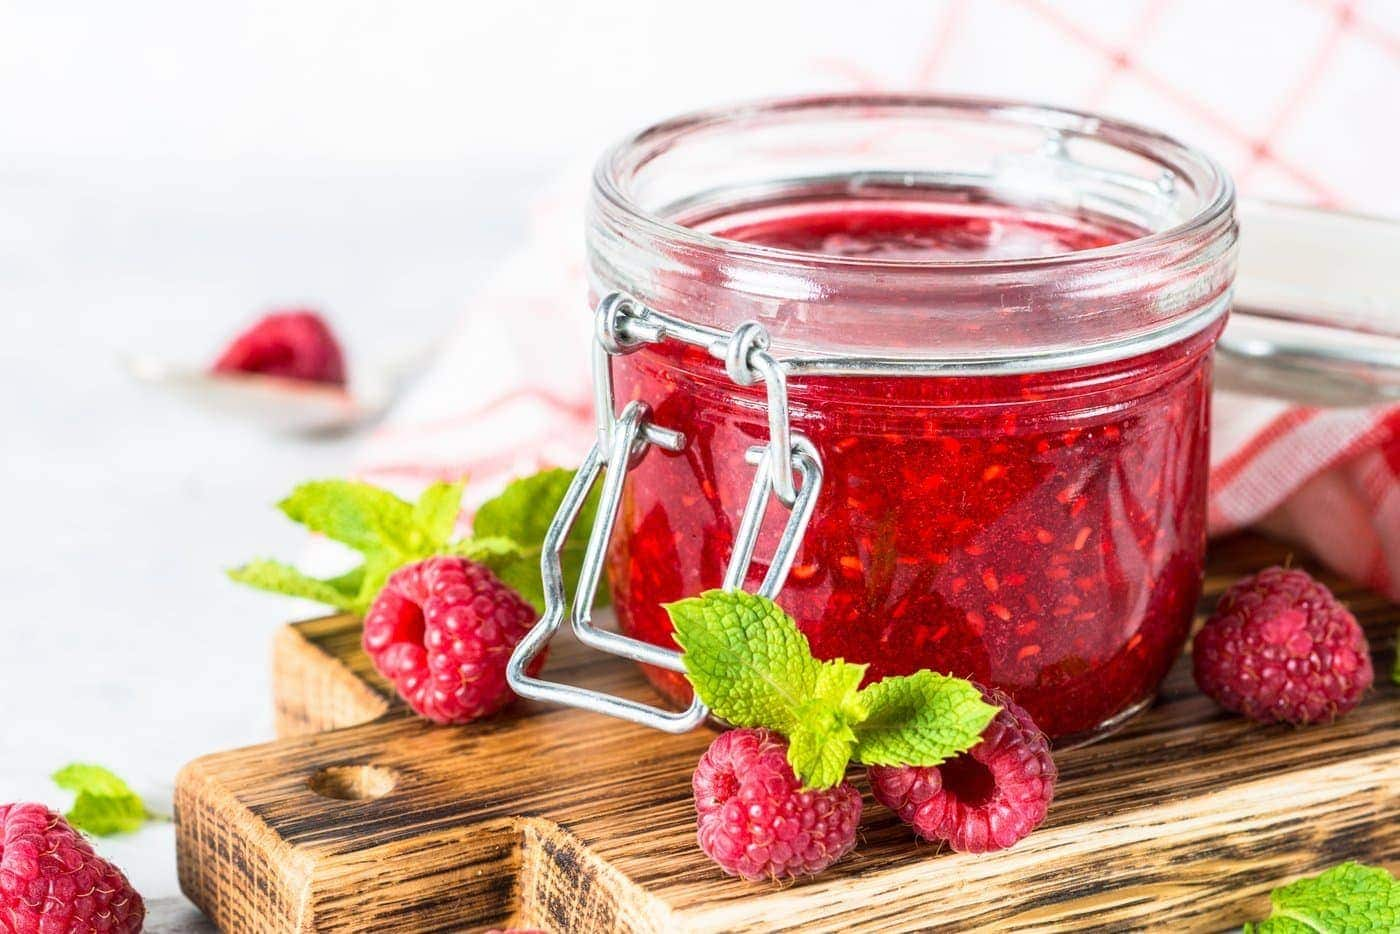 old-fashioned homemade jam & jelly